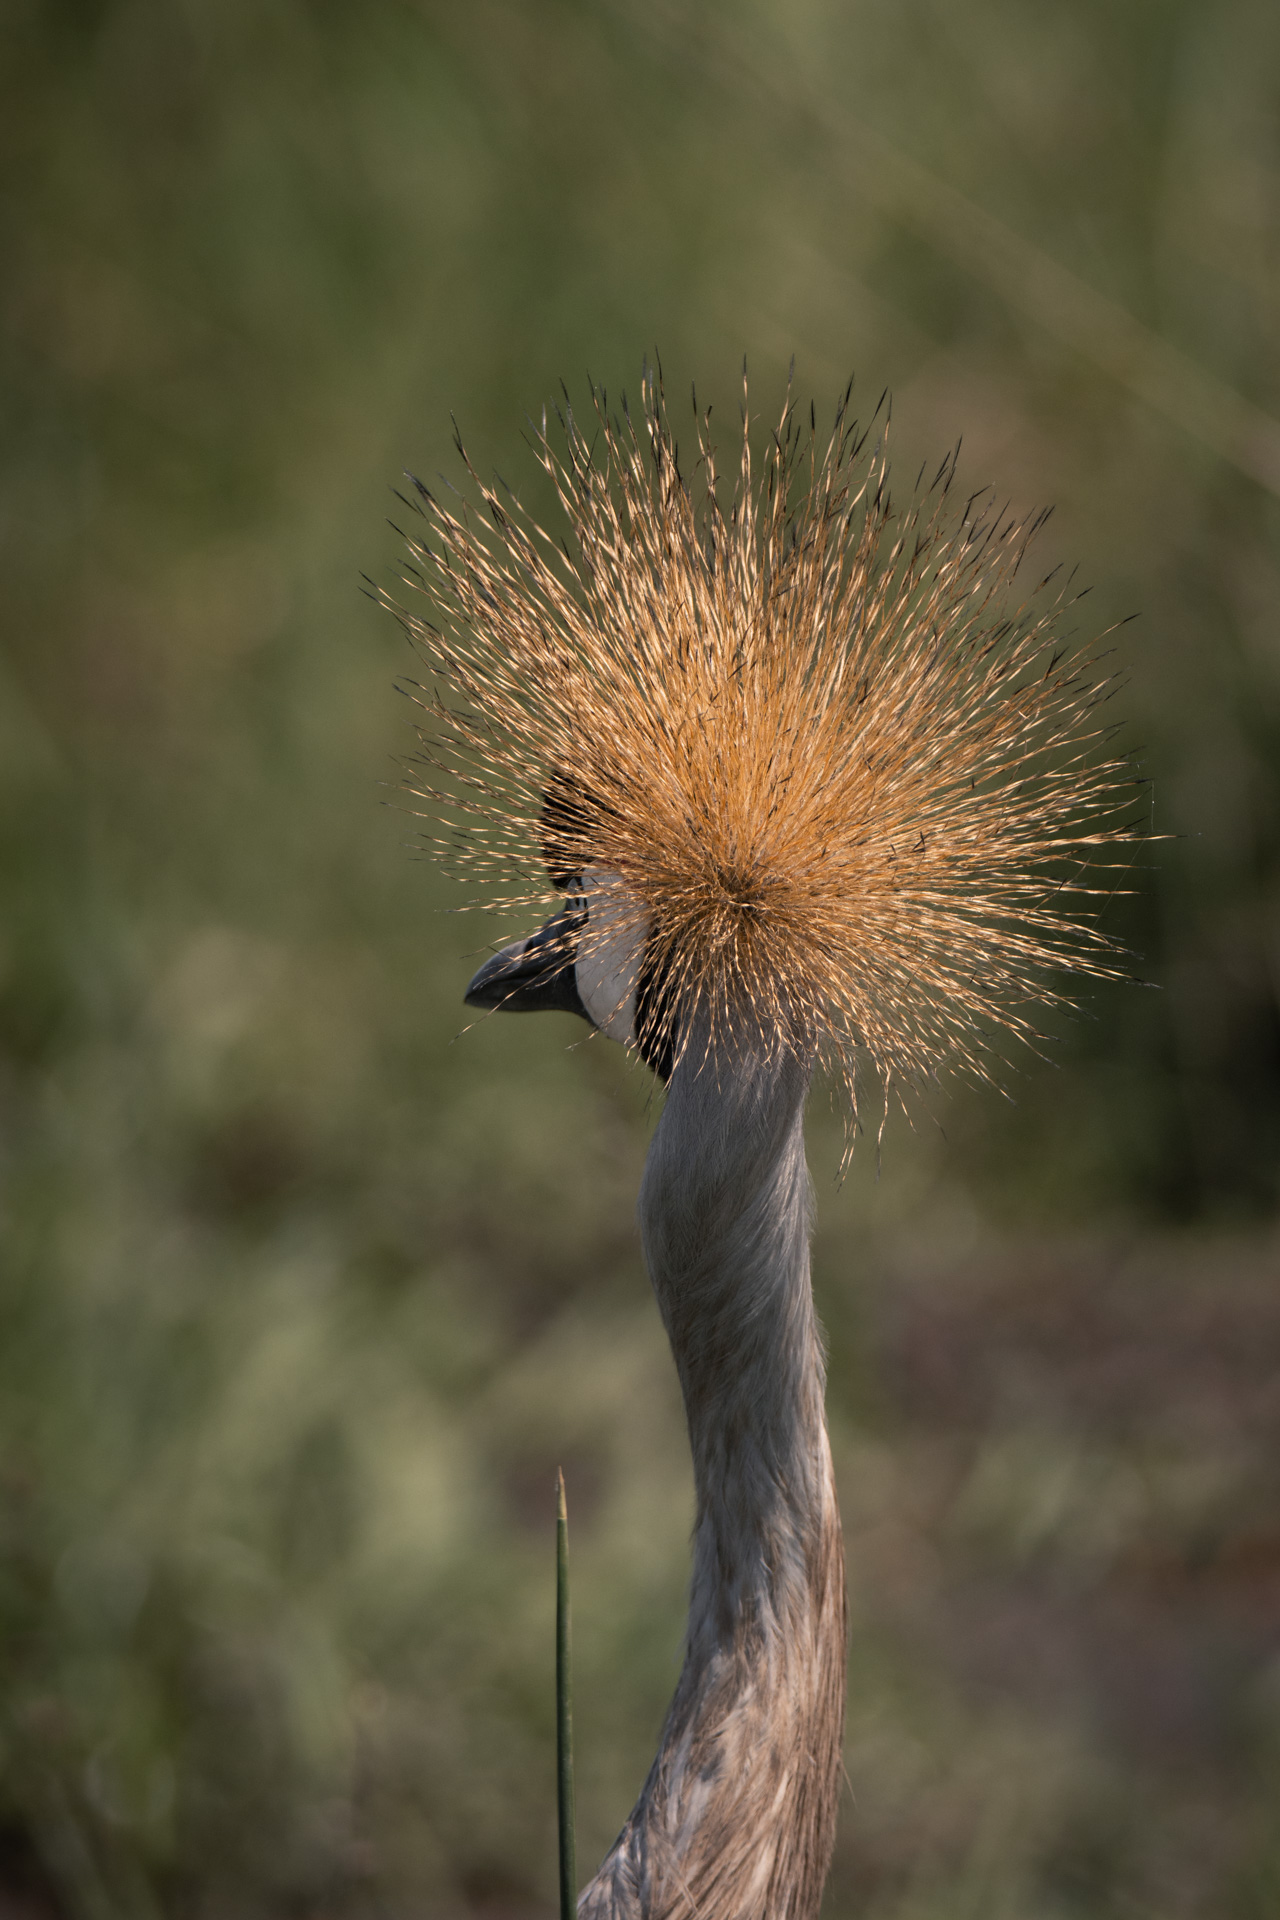 Crested crane crown